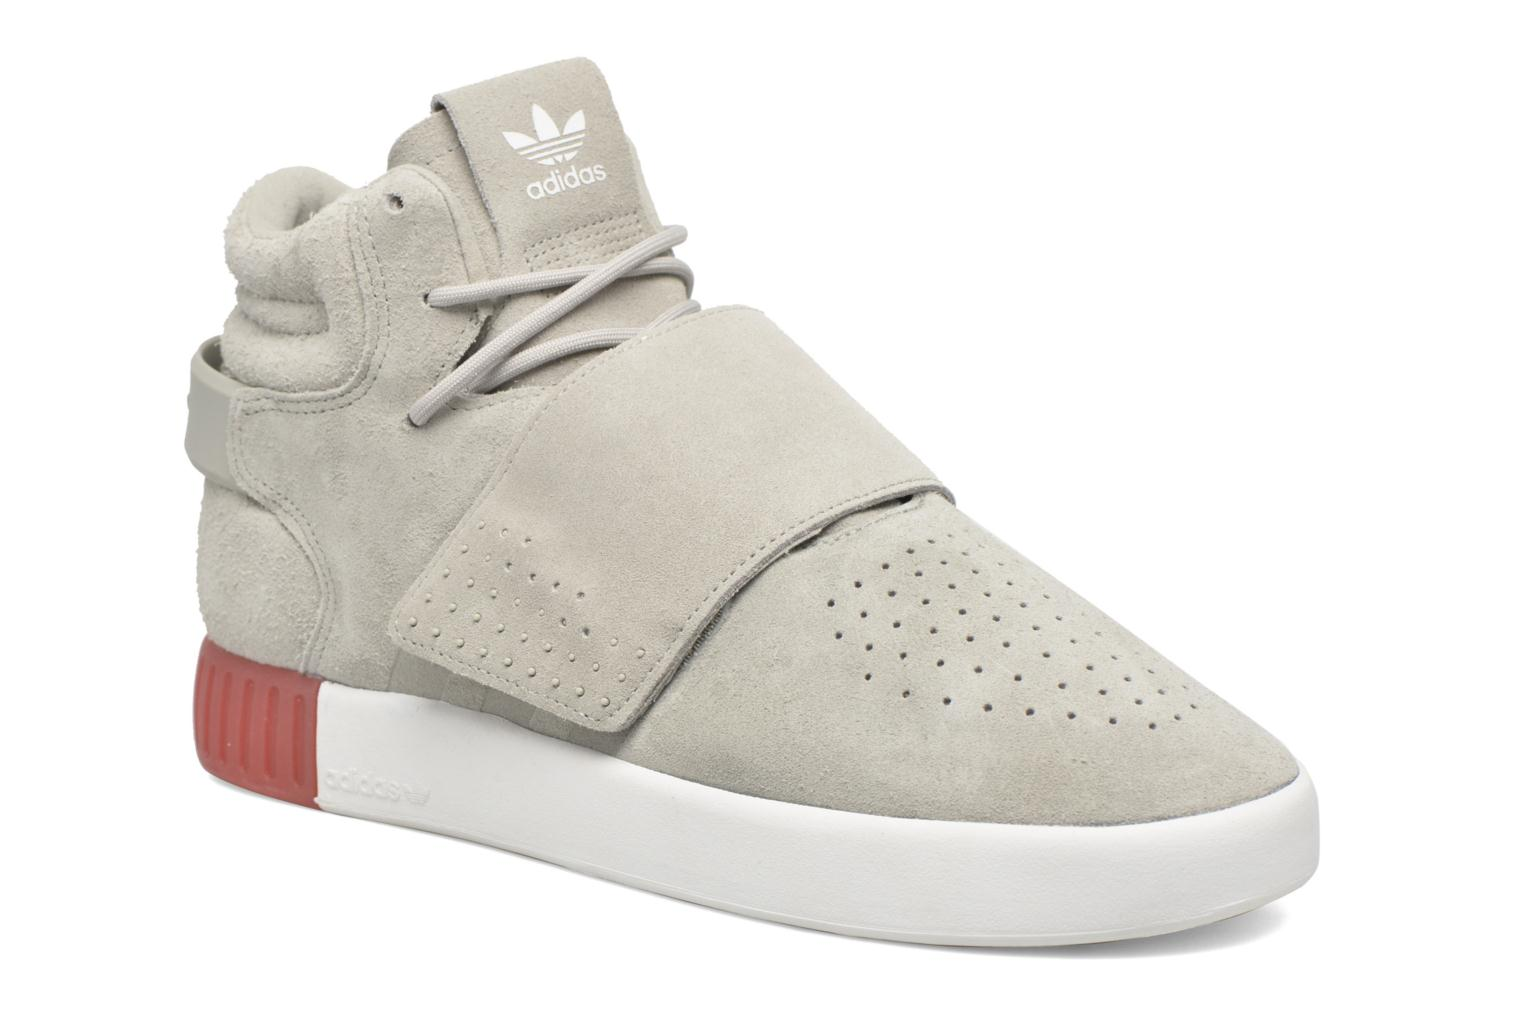 Baskets Adidas Originals Tubular Invader Strap Gris vue détail/paire